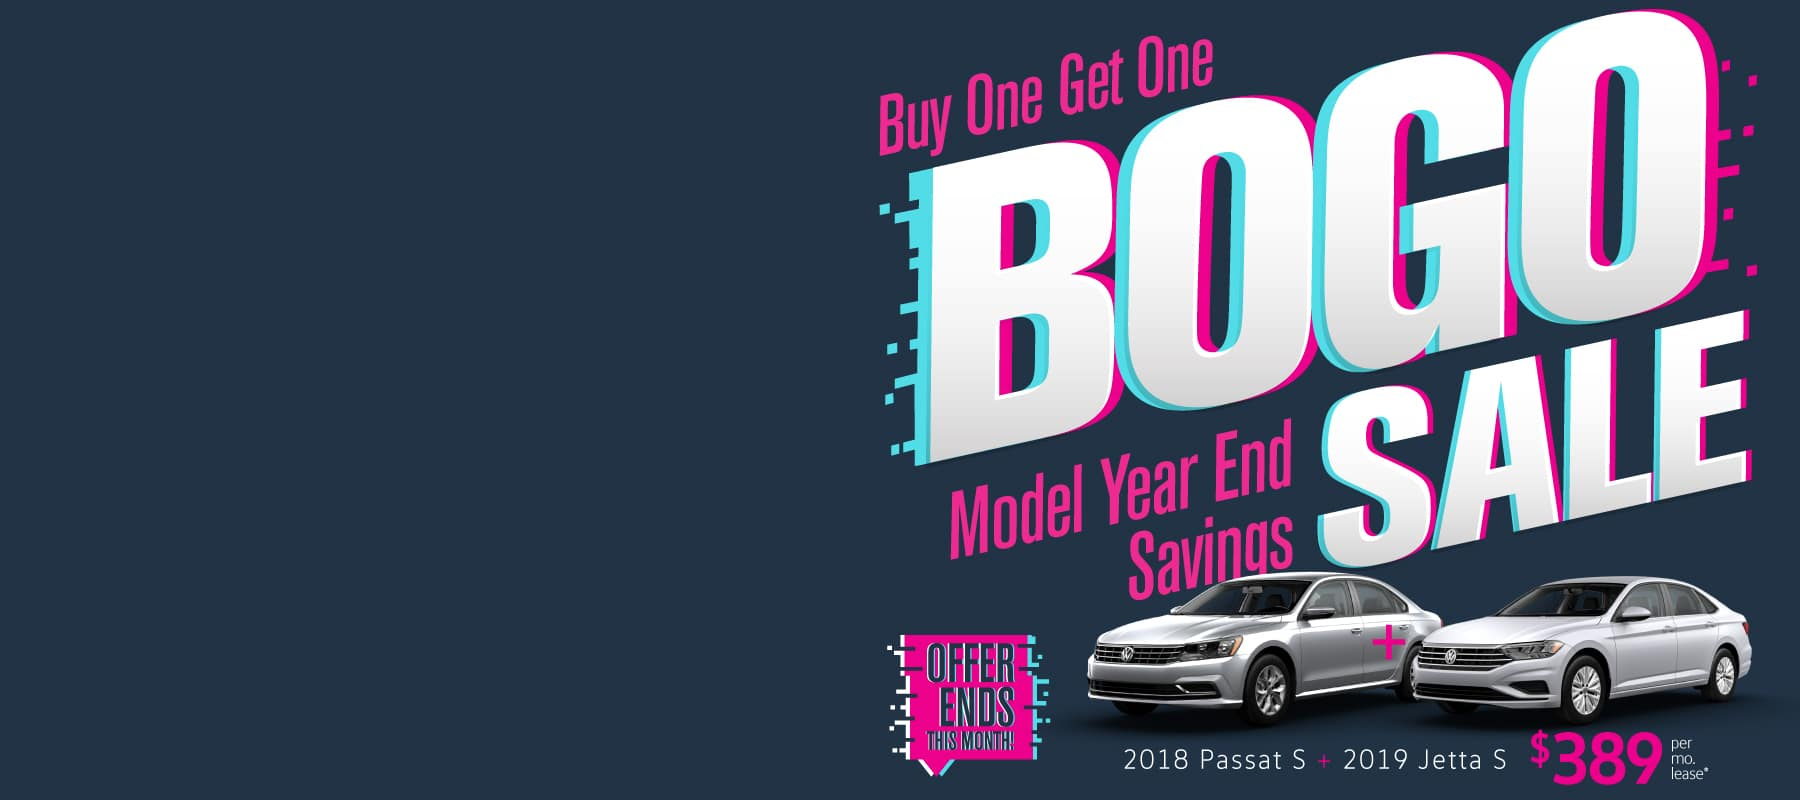 Buy One Get One 2 for 1 Sale at Volkswagen SouthTowne!